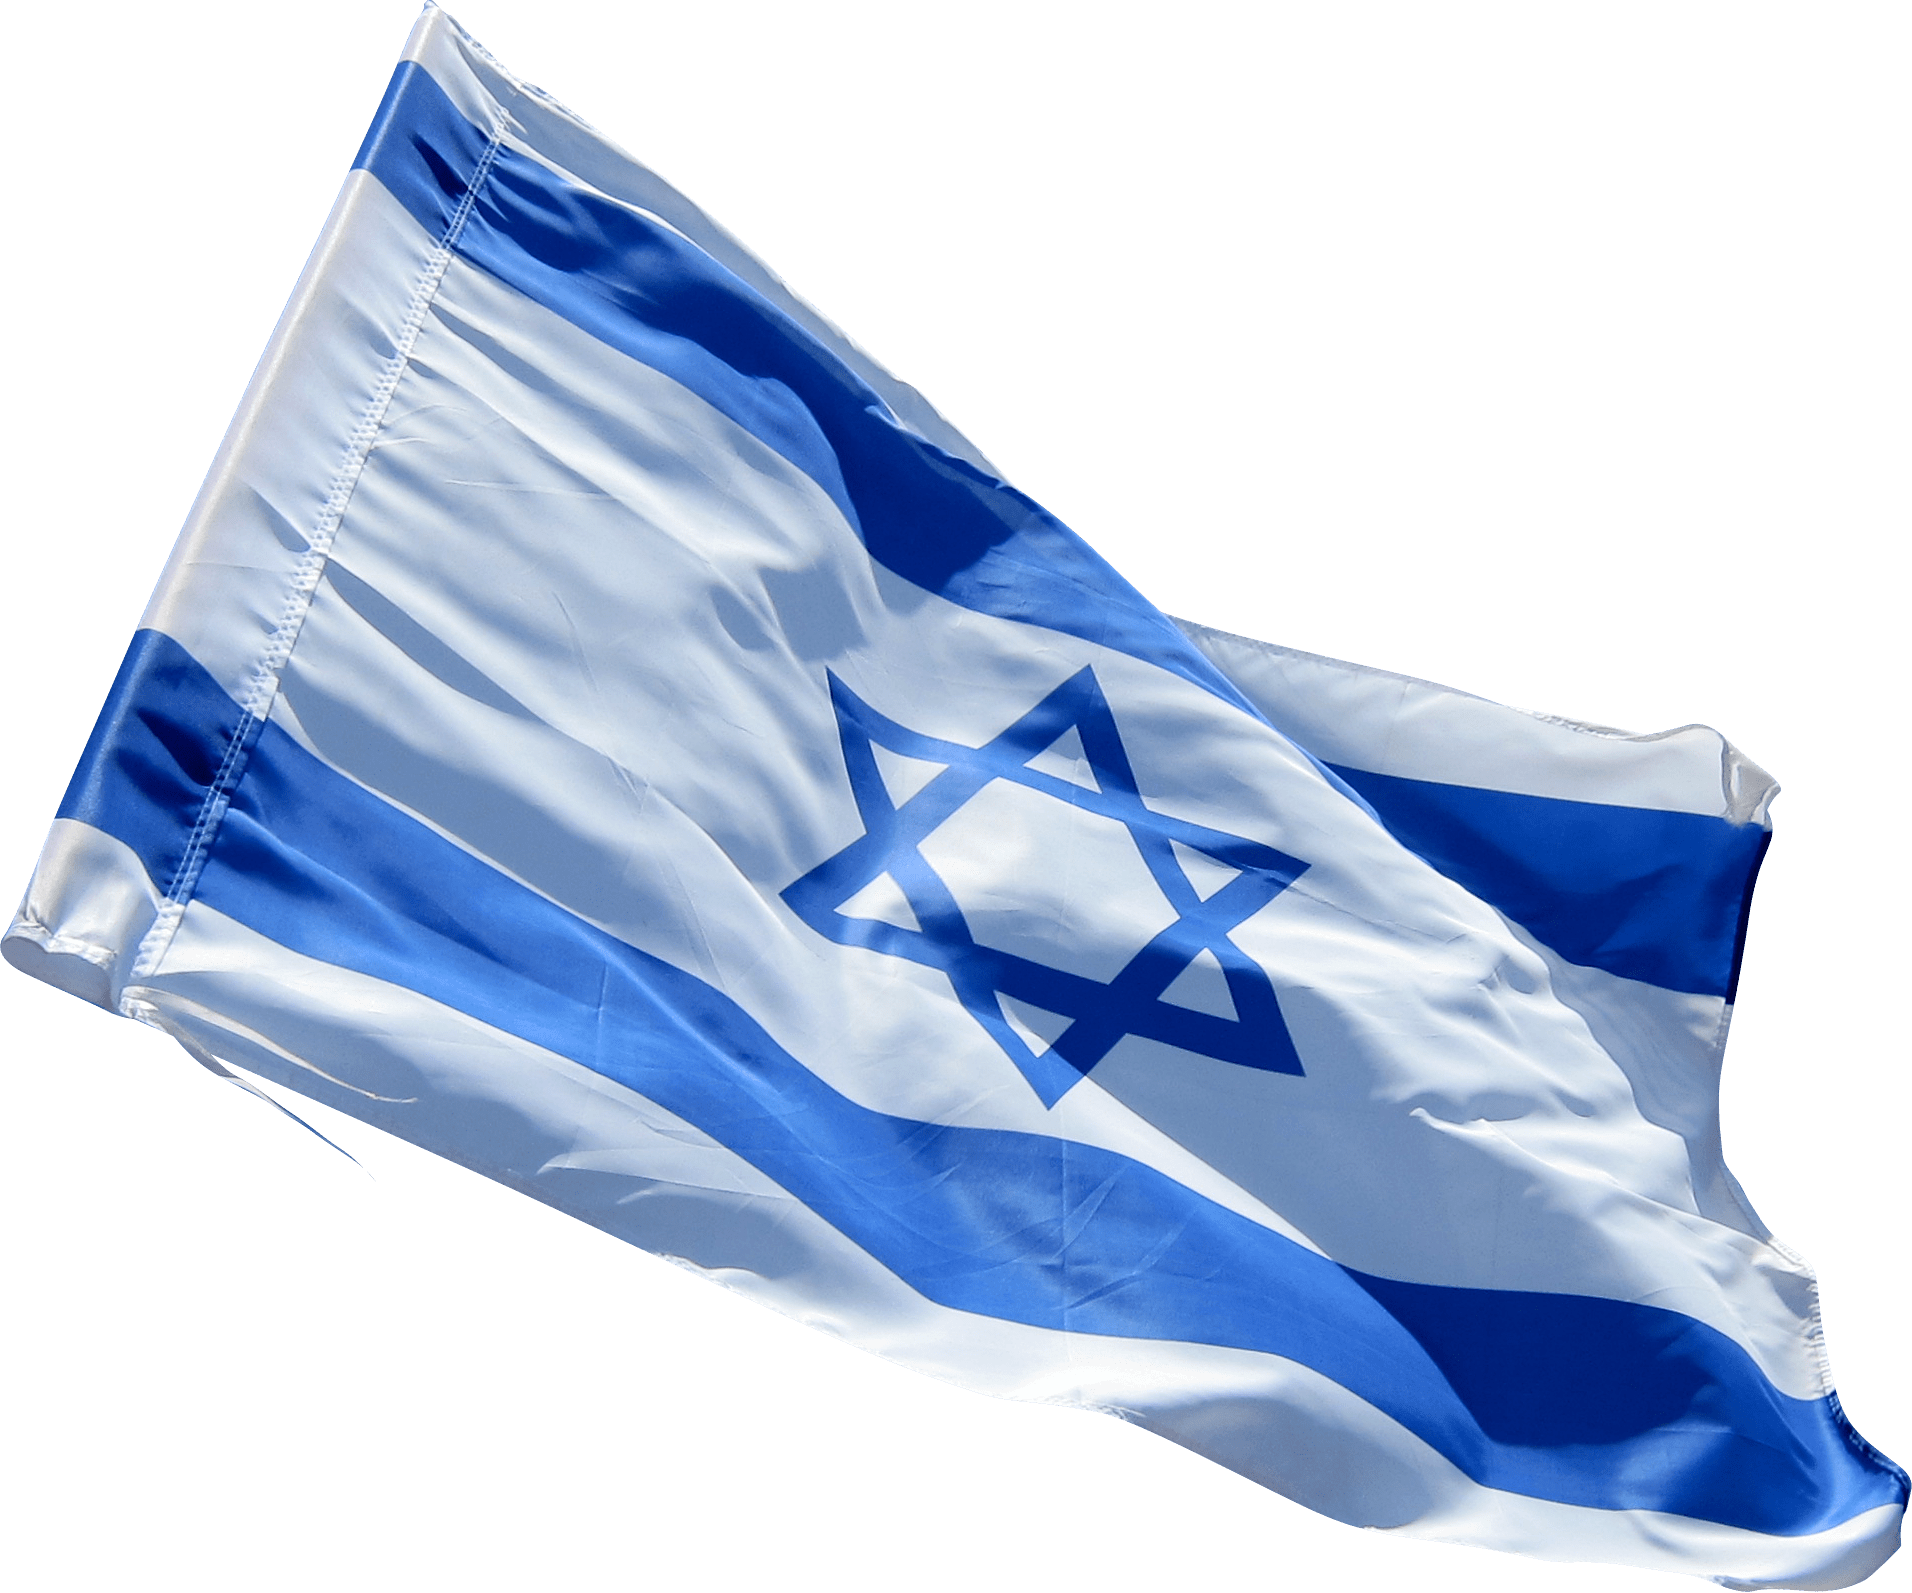 High quality Flag of Israel Transparent Free Image